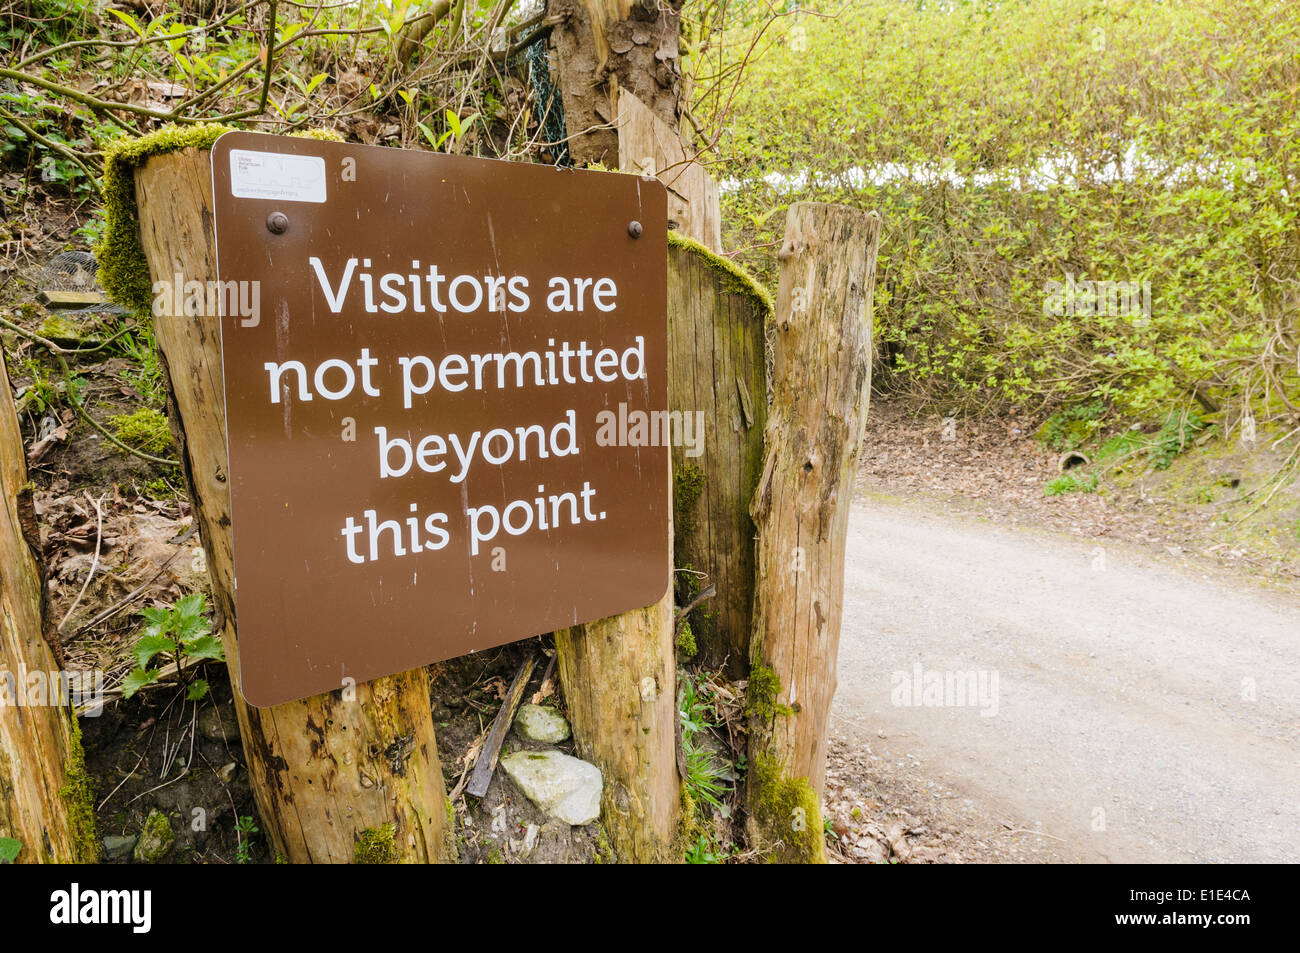 Sign advising that visitors are not permitted beyond this point - Stock Image